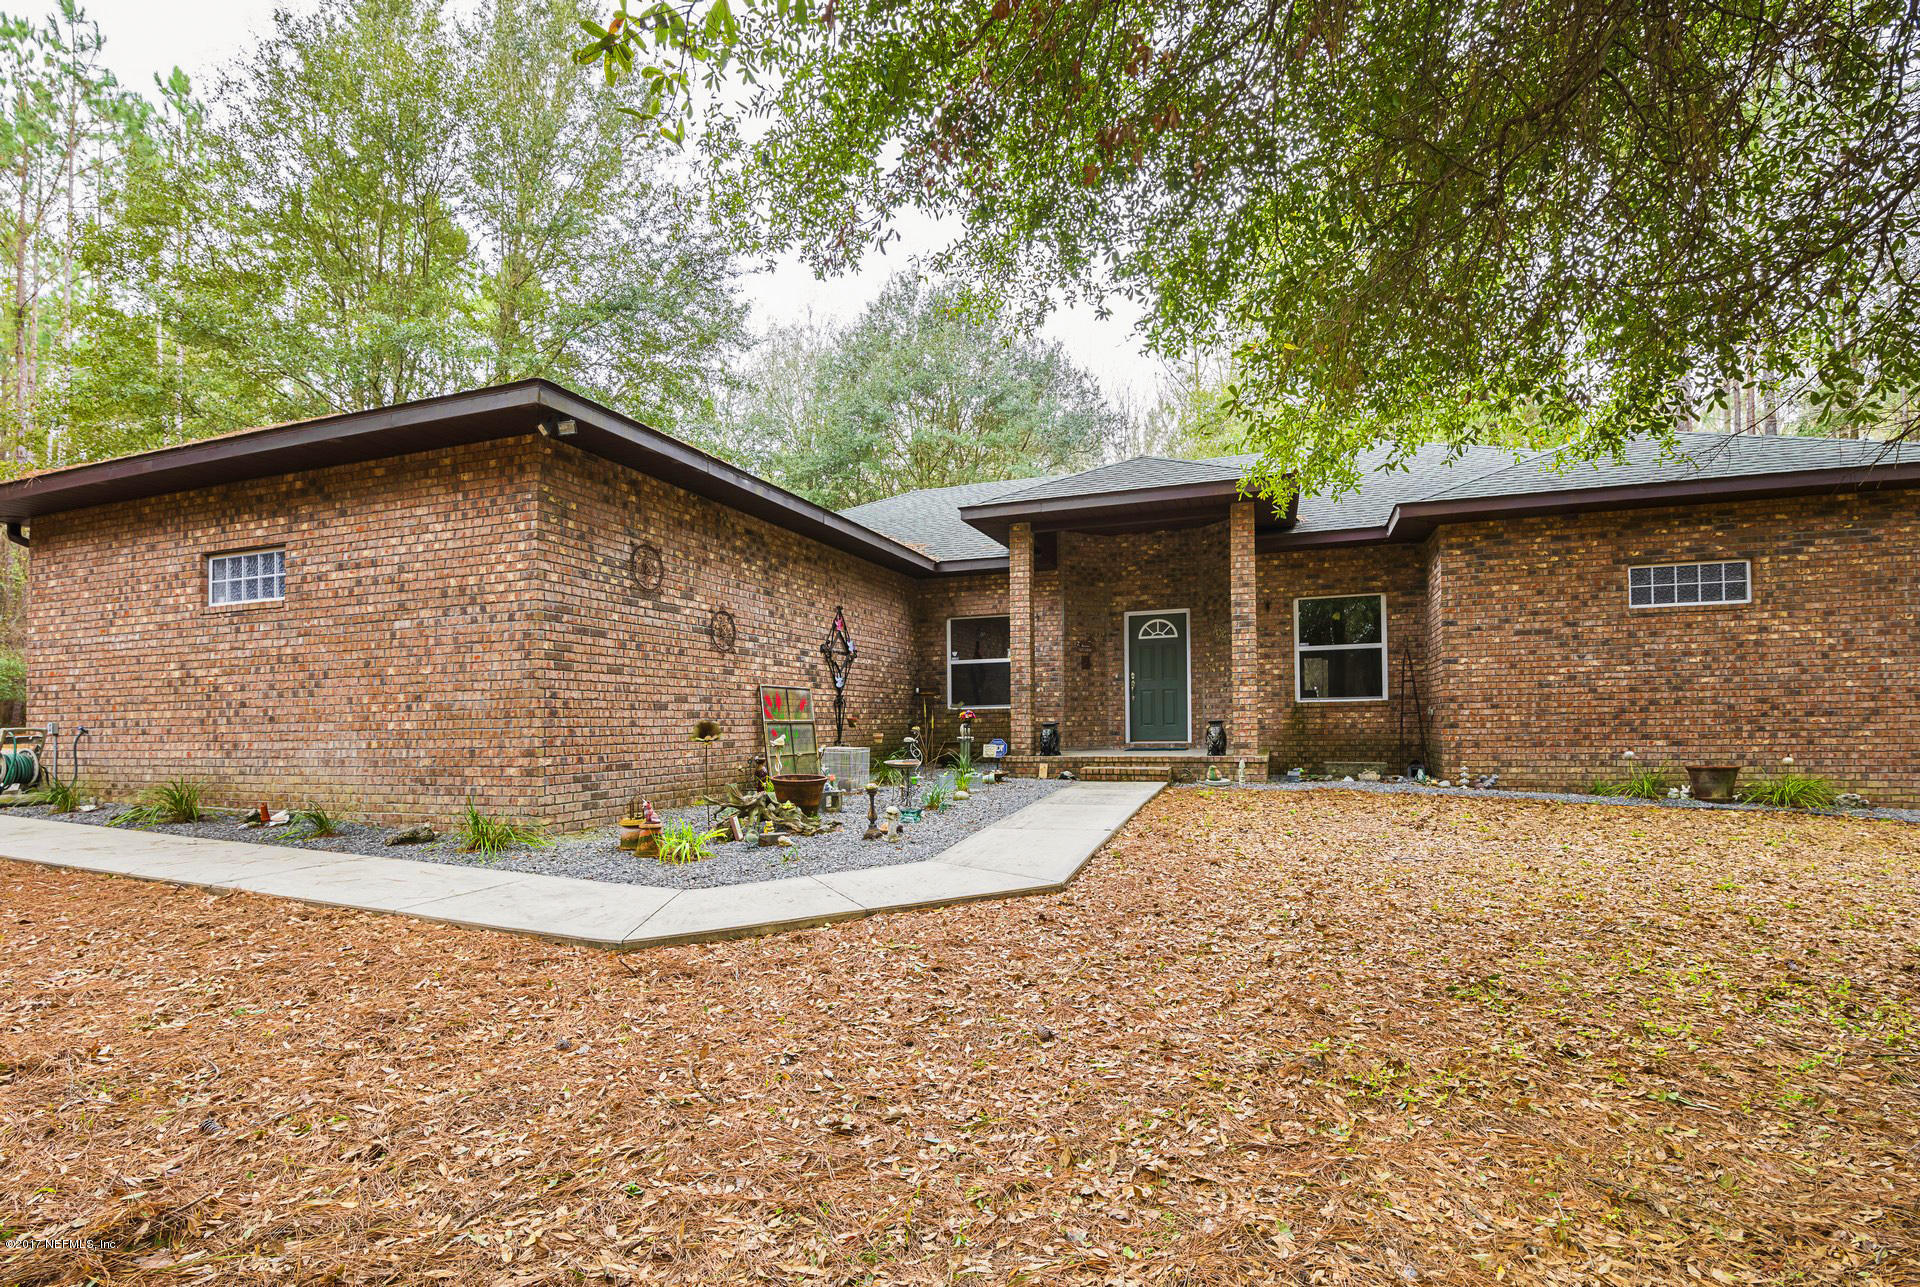 468 ORMOND WITT, LAKE CITY, FLORIDA 32025, 3 Bedrooms Bedrooms, ,2 BathroomsBathrooms,Residential - single family,For sale,ORMOND WITT,865146